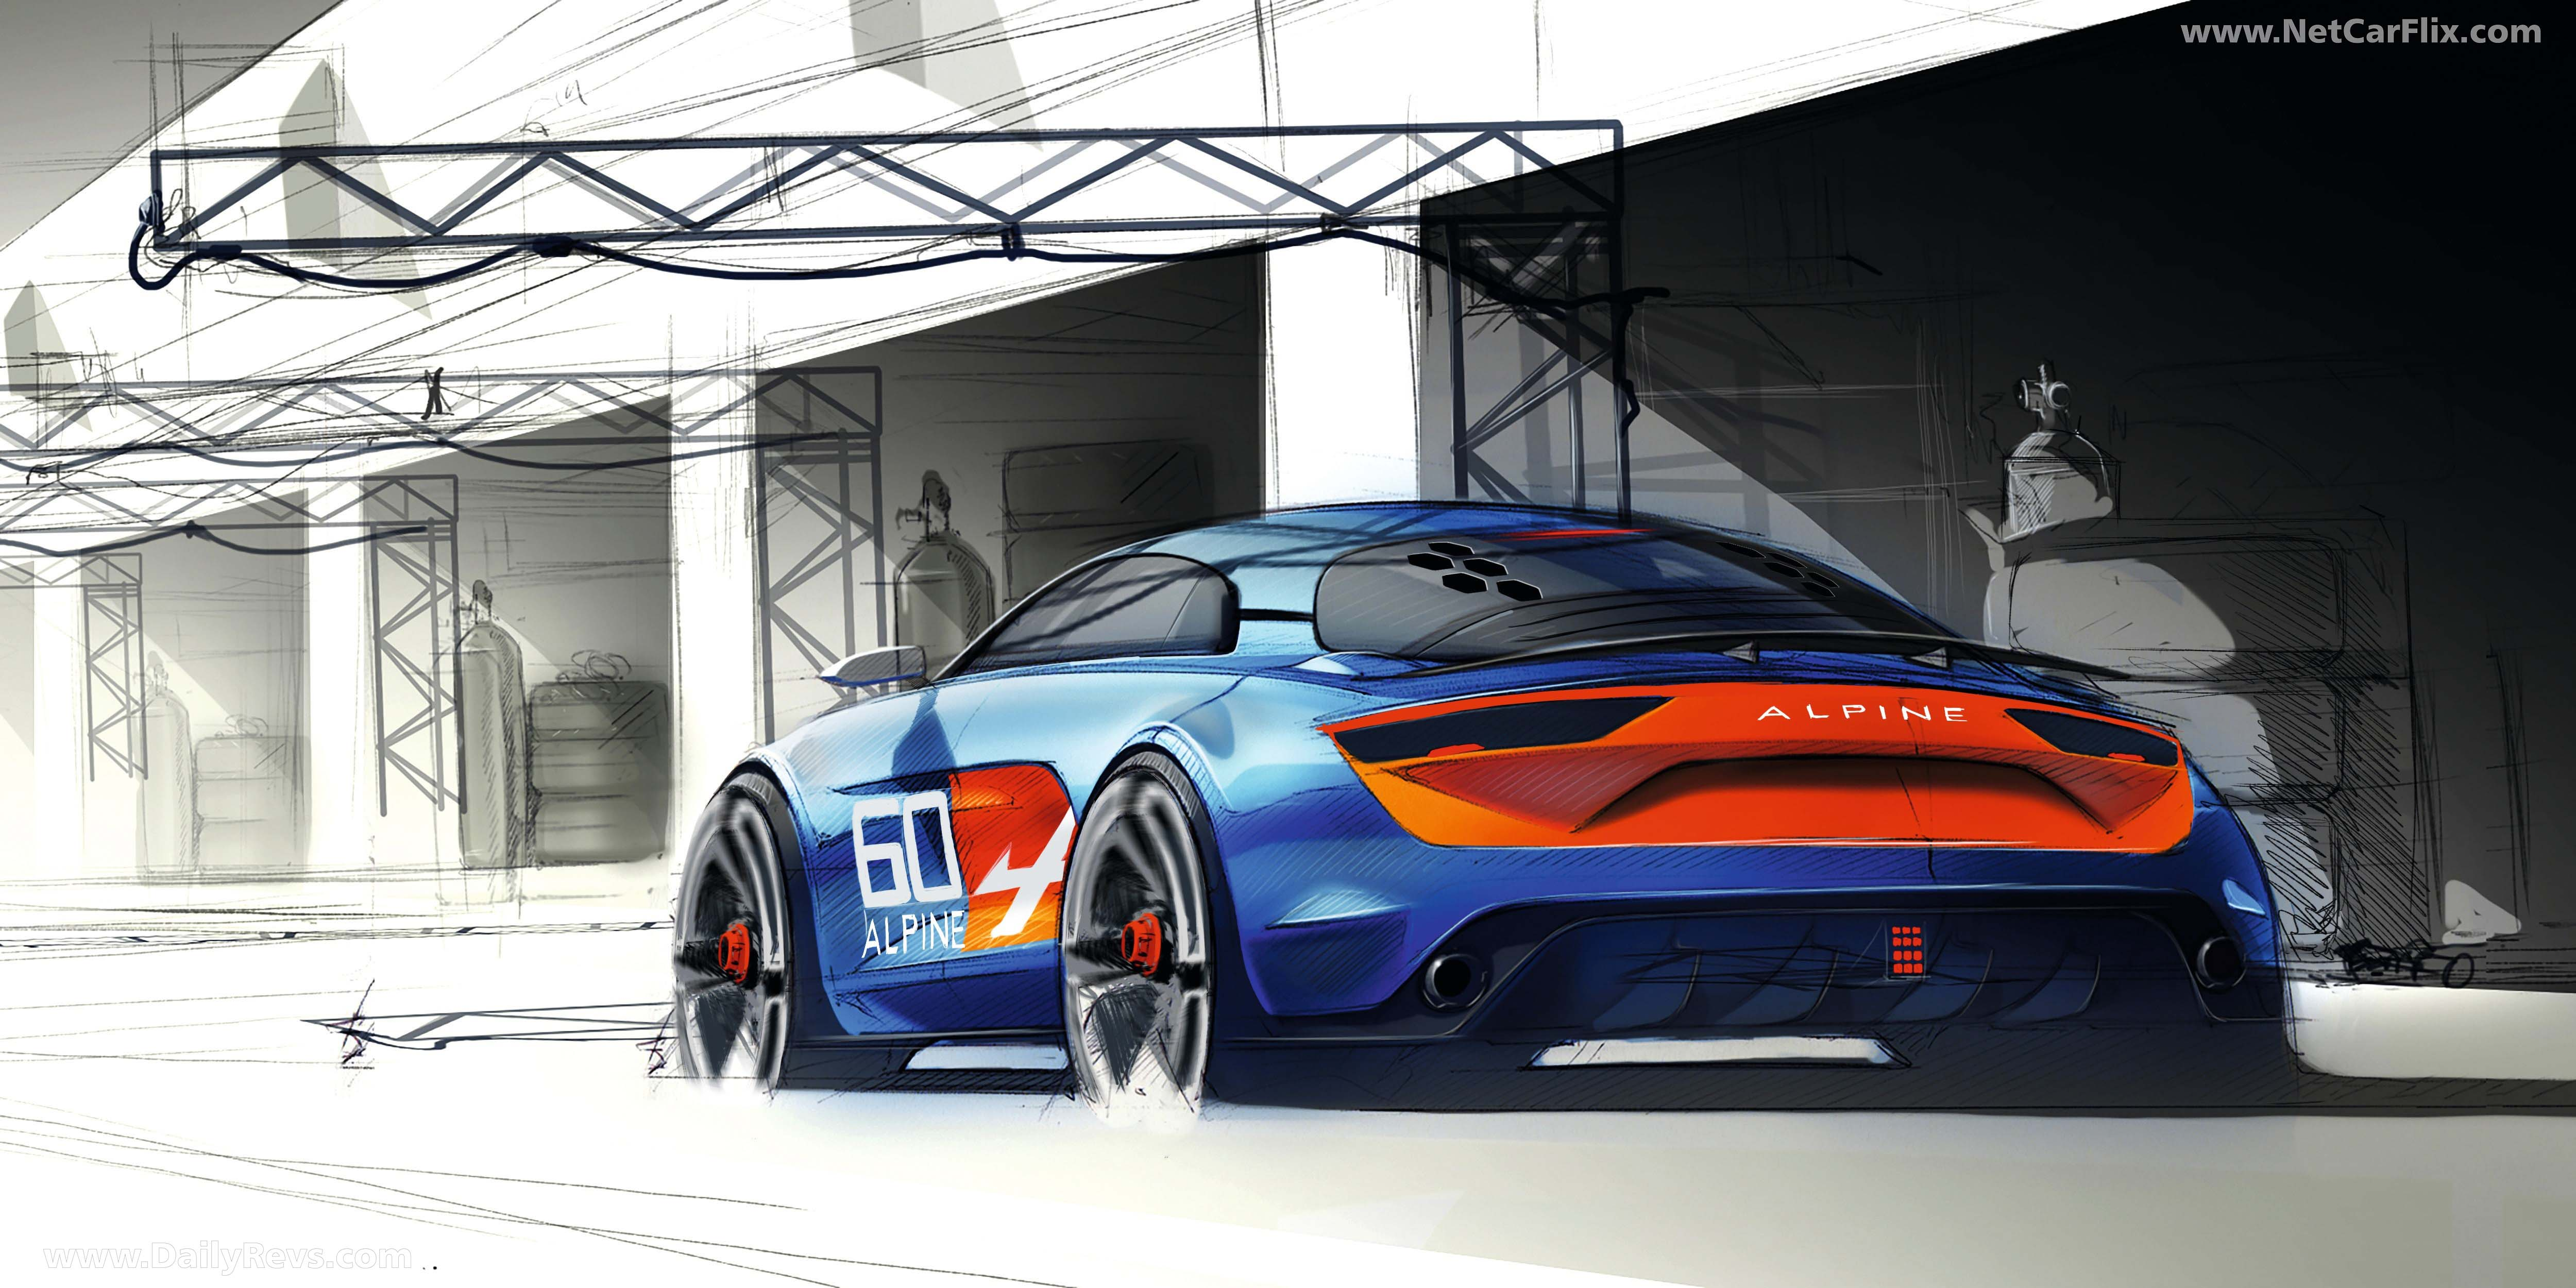 2015 Alpine Celebration Concept full